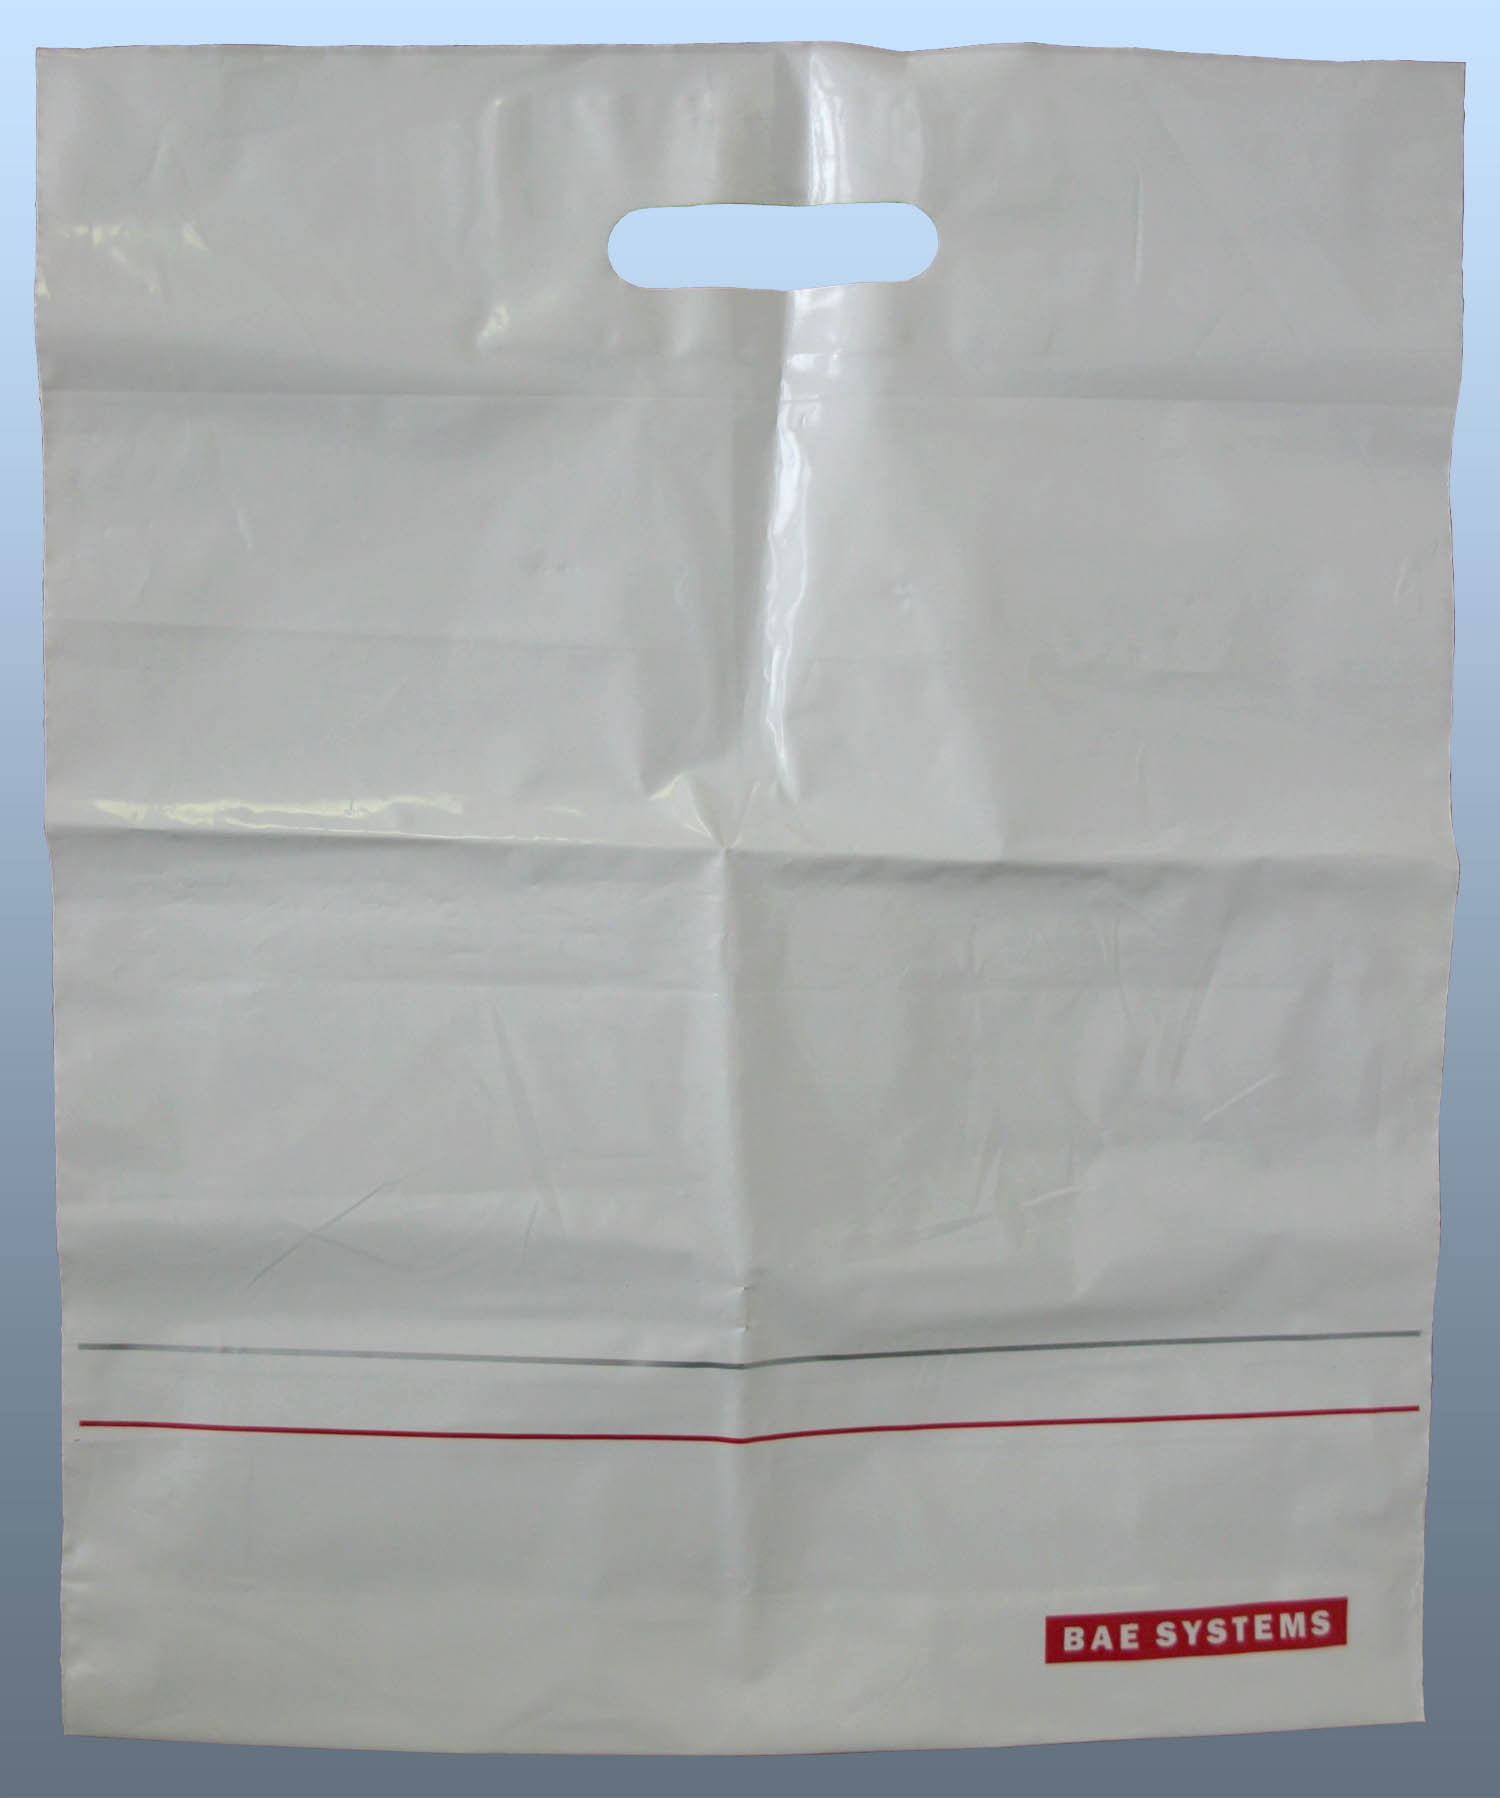 BAE Systems Carrier Bag